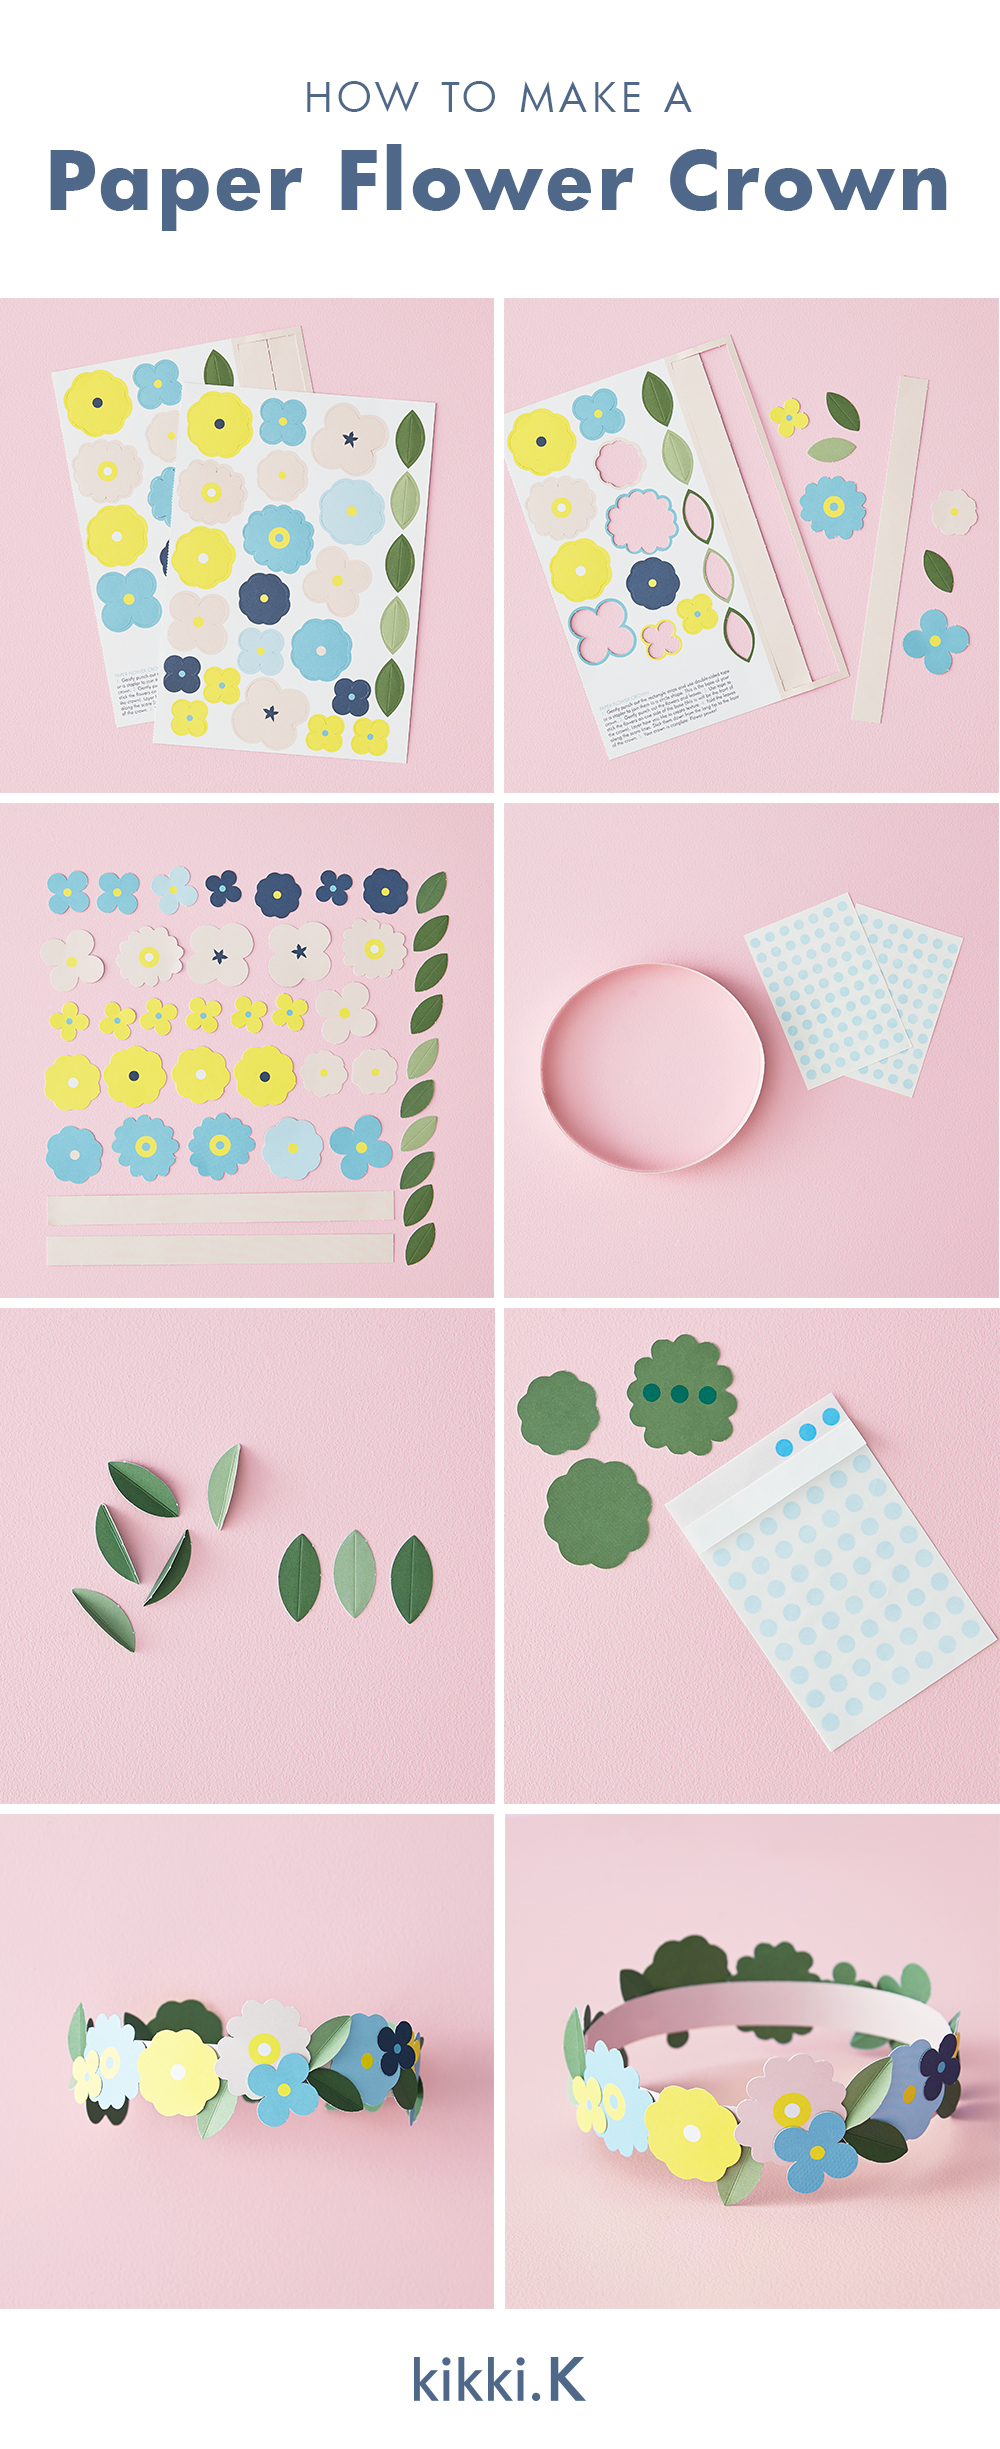 How to make a paper flower crown kikkik blog paper flower crown downloadable izmirmasajfo